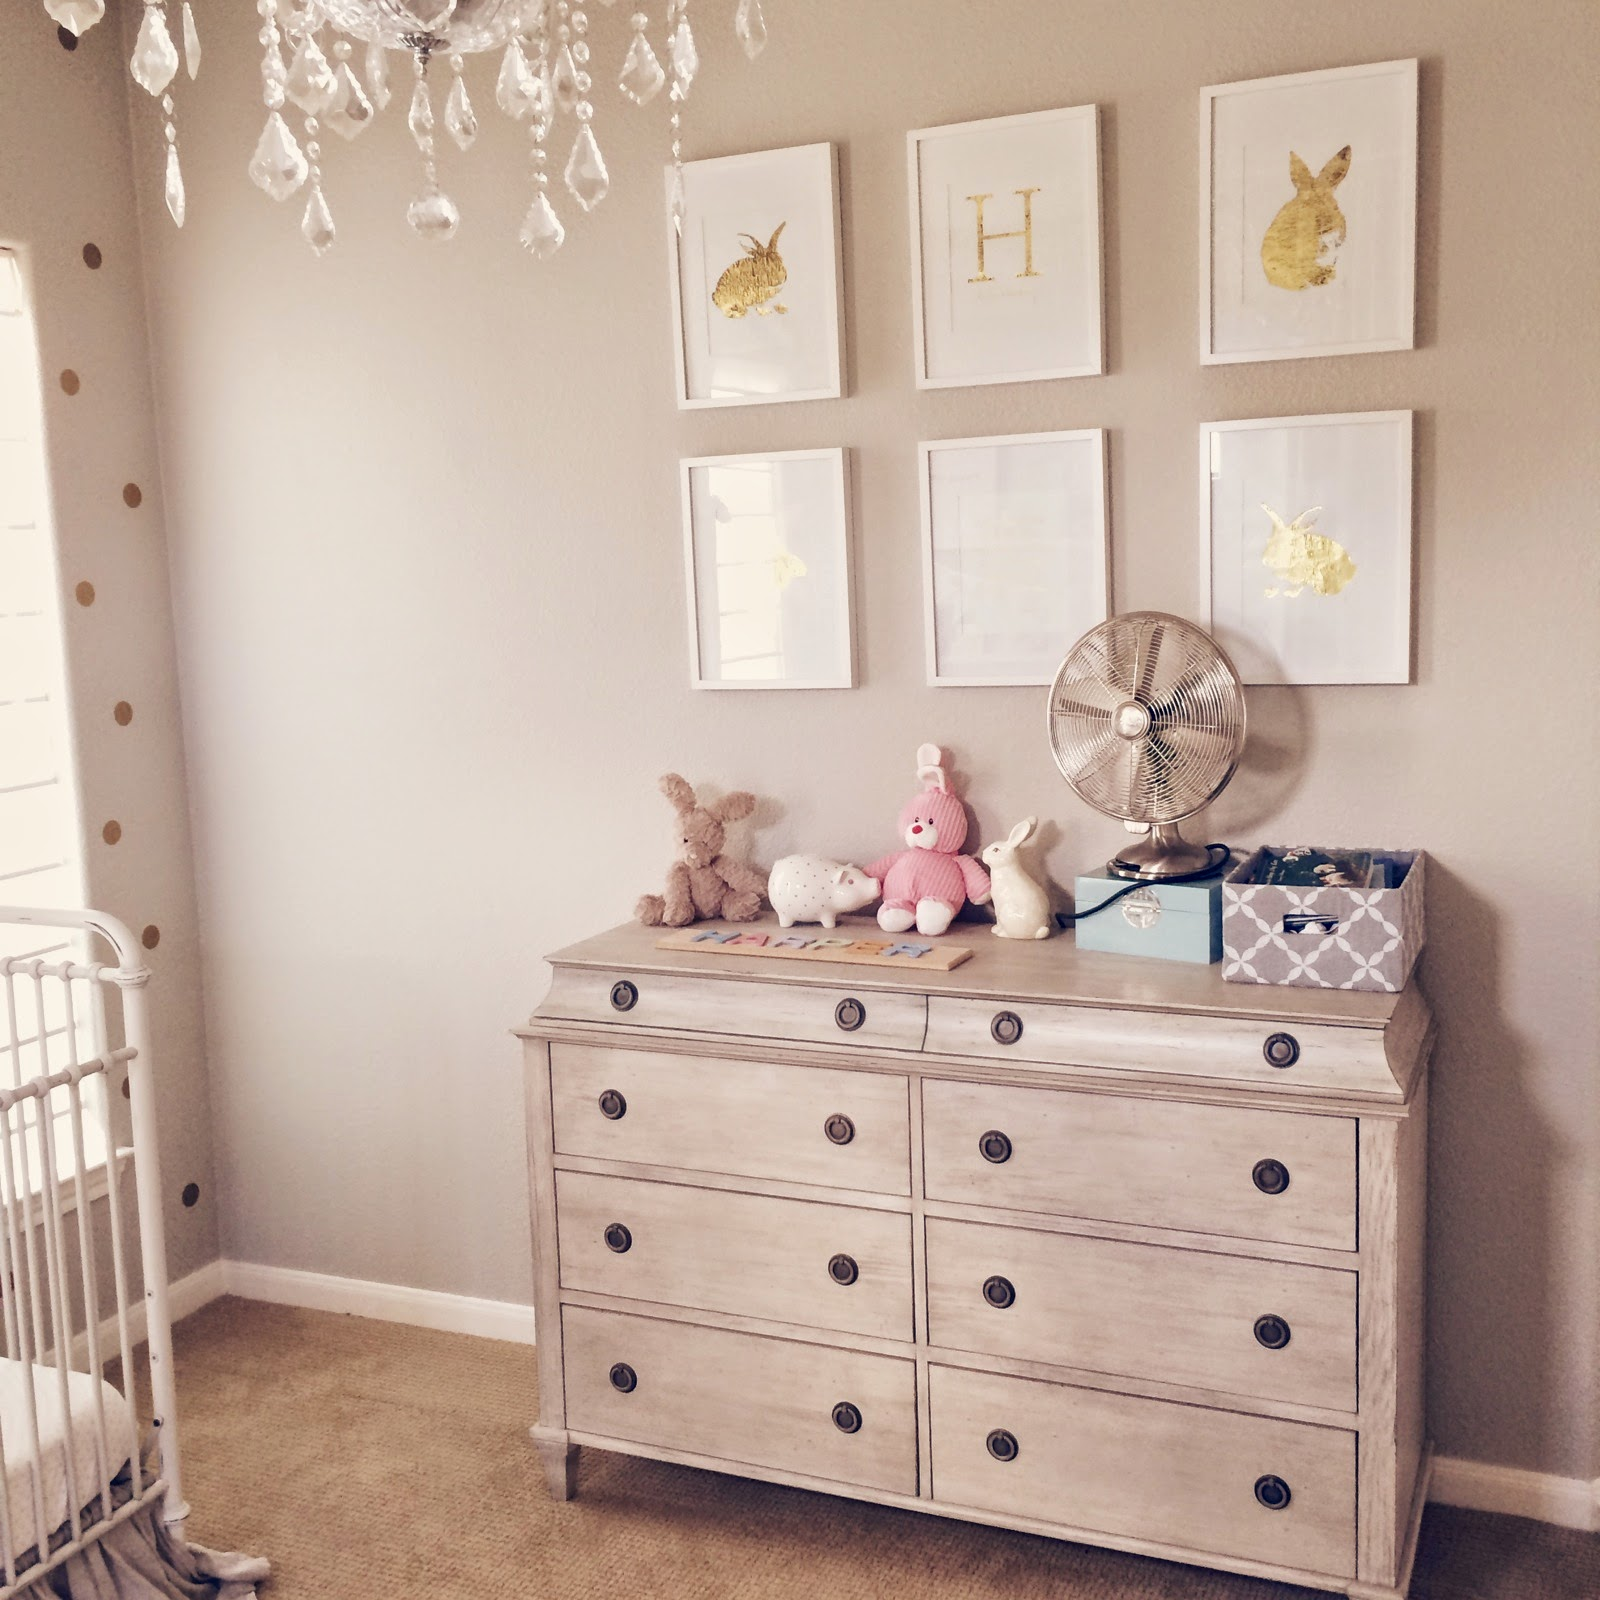 Veronika's Blushing: Harper's Nursery- Updated